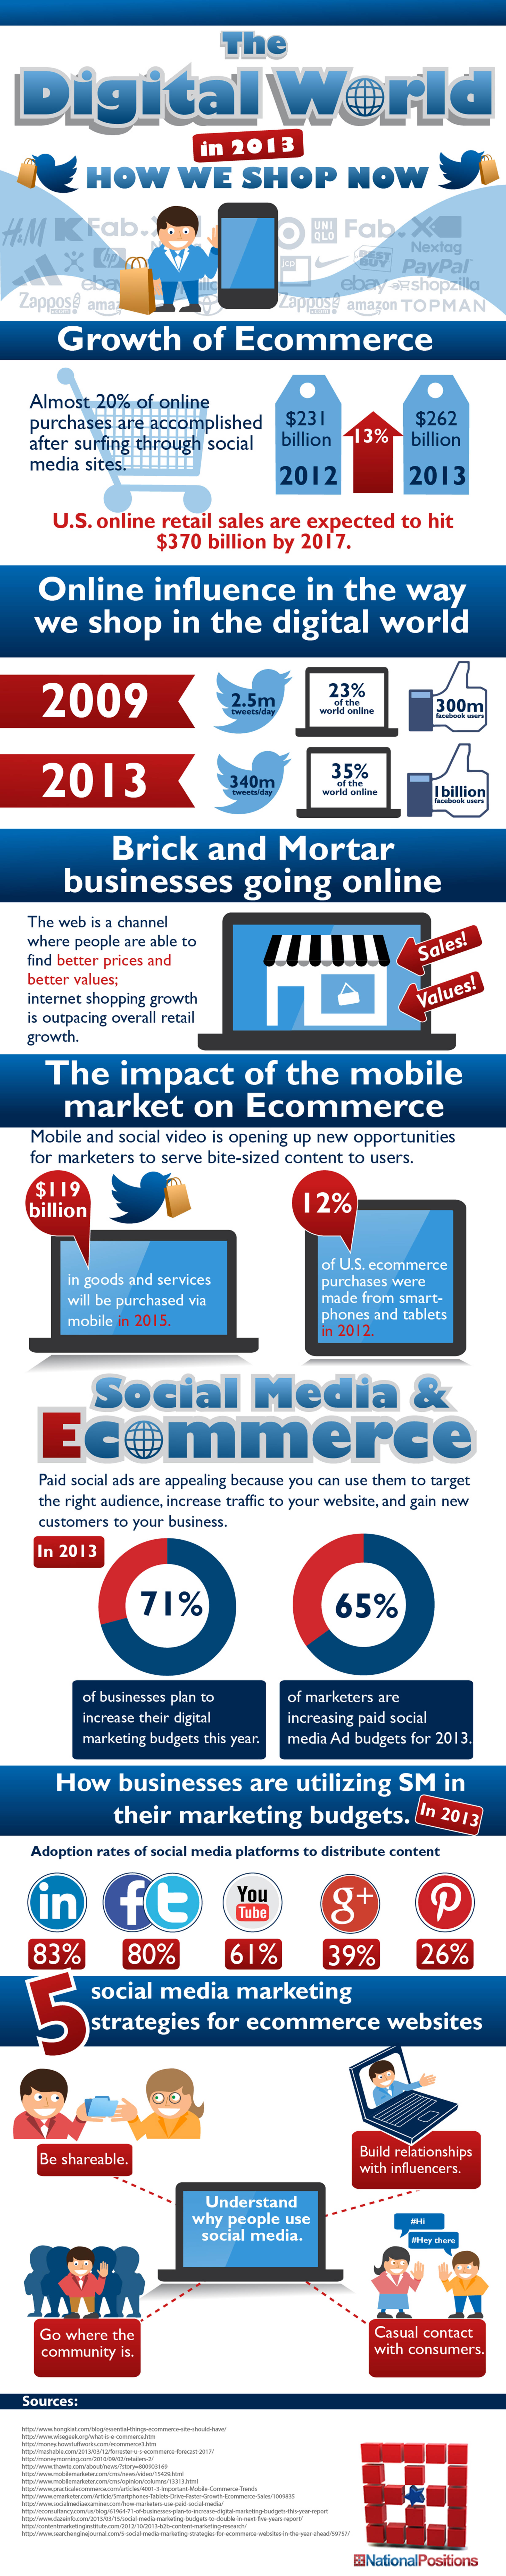 The Growth of E-Commerce Marketing